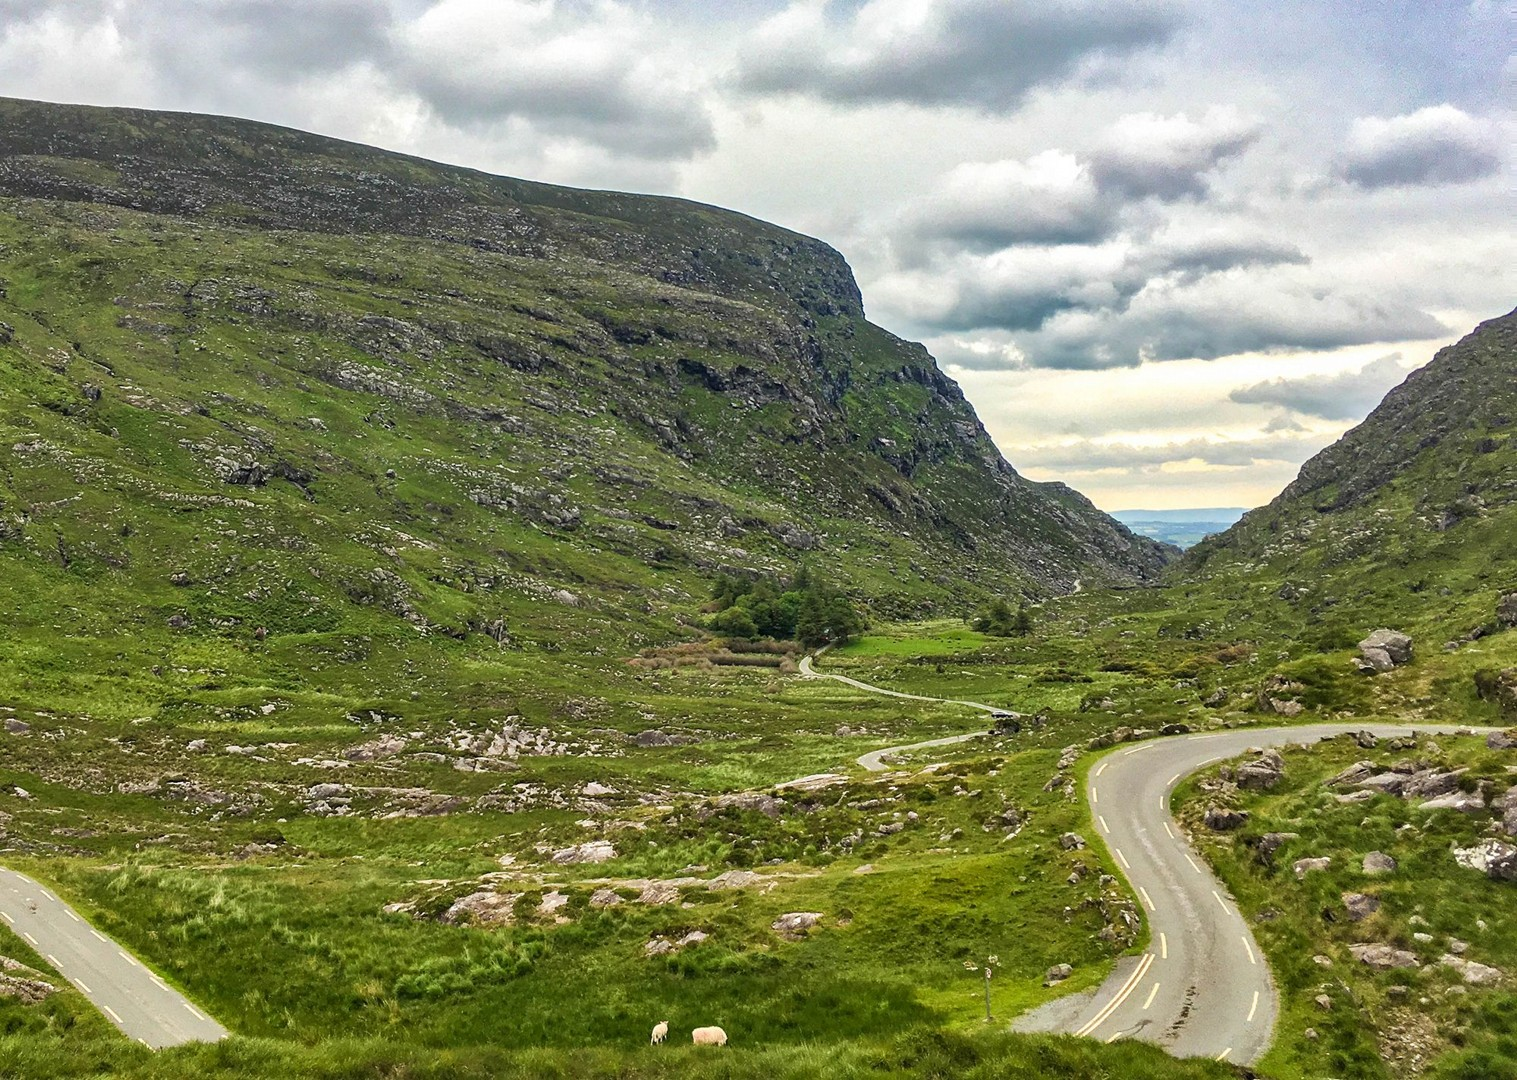 cycling-irish-mountains-leisure-trip-self-guided-ireland.jpg - Ireland - Highlights of Kerry - Self-Guided Leisure Cycling Holiday - Leisure Cycling